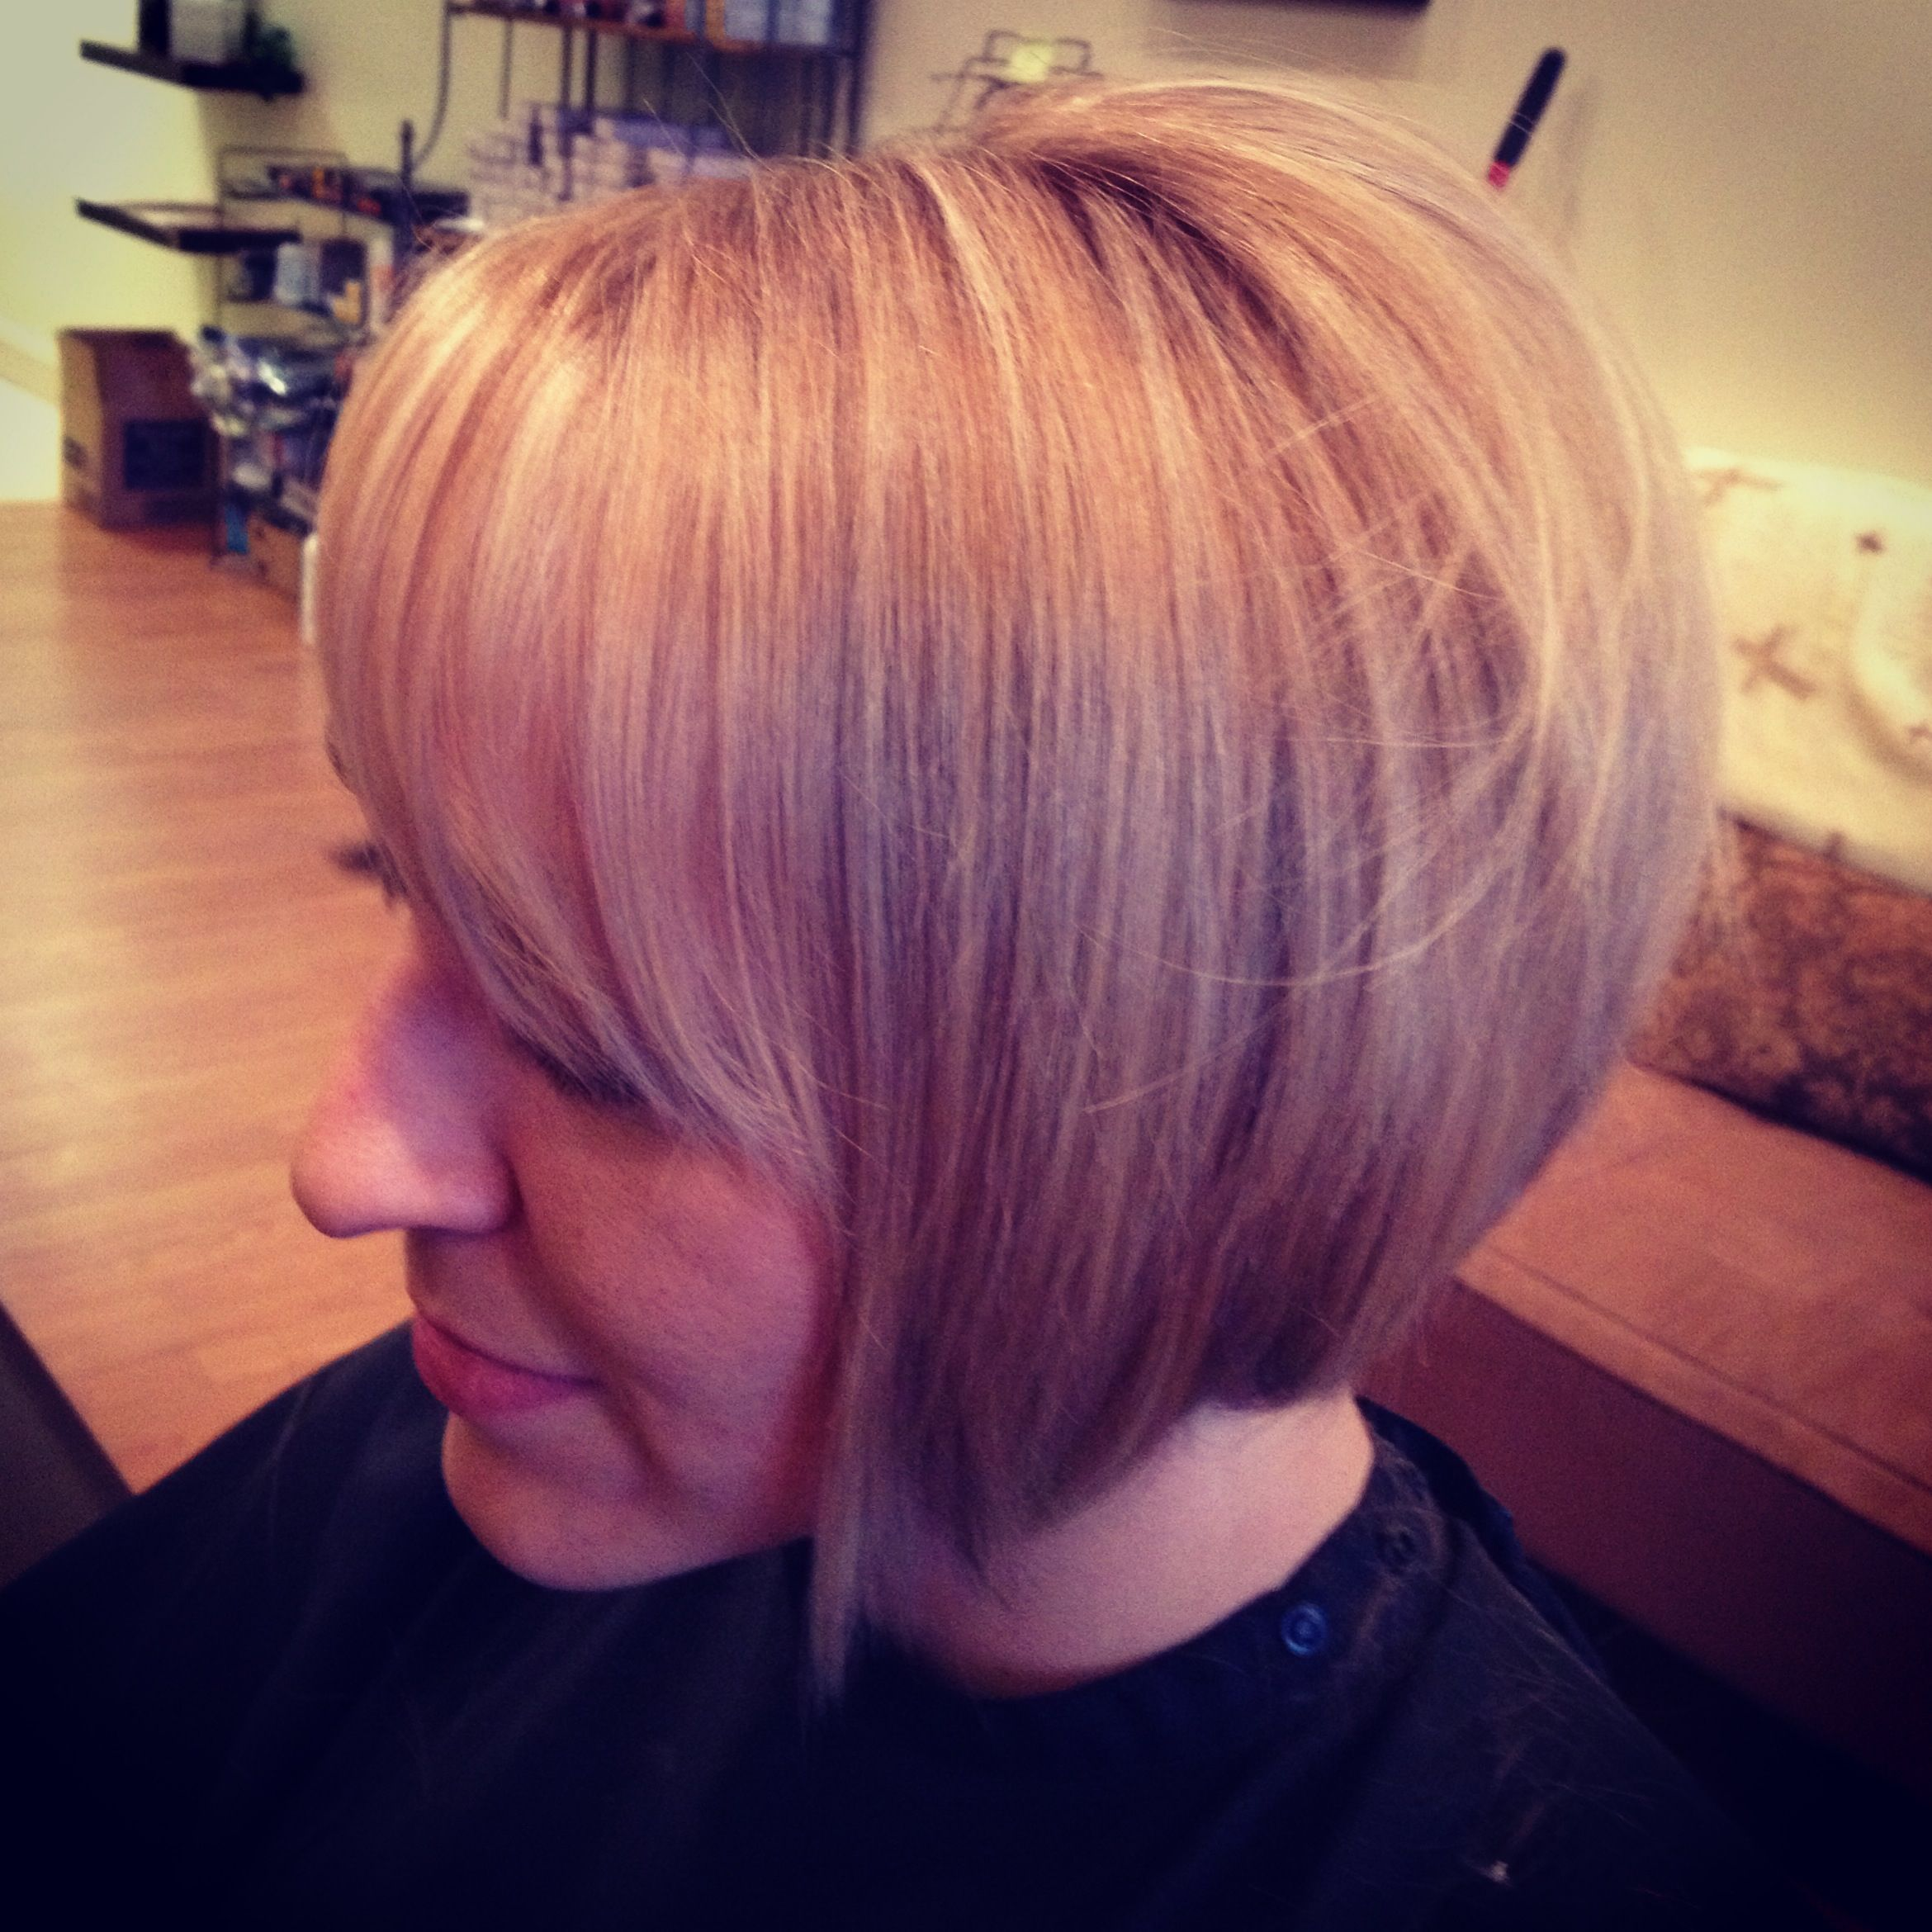 Drop bob with blonde lows and highlights